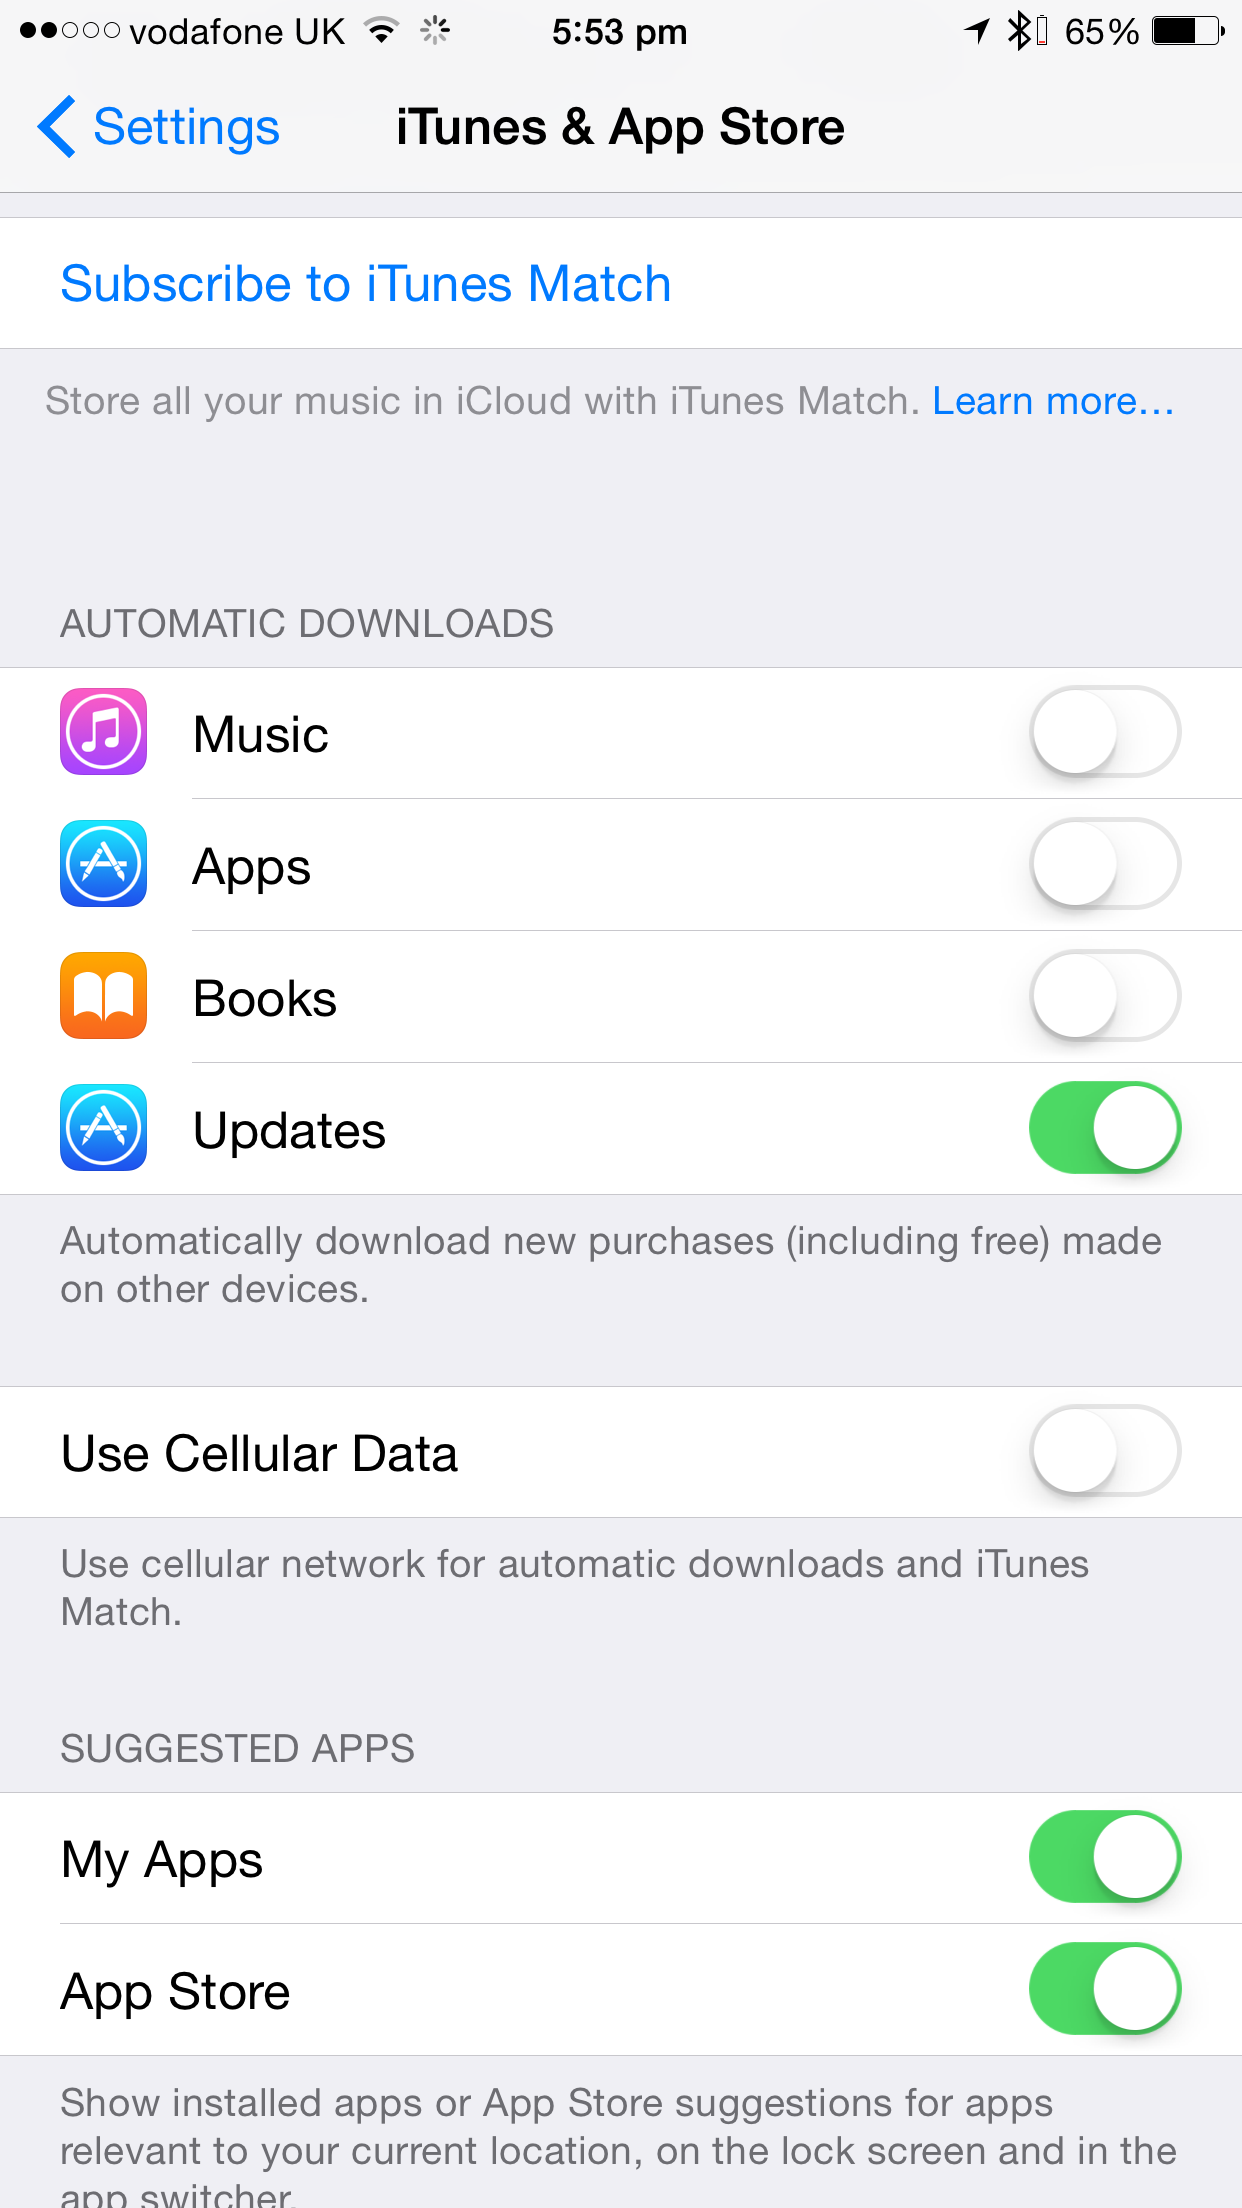 How to stop downloading an app update